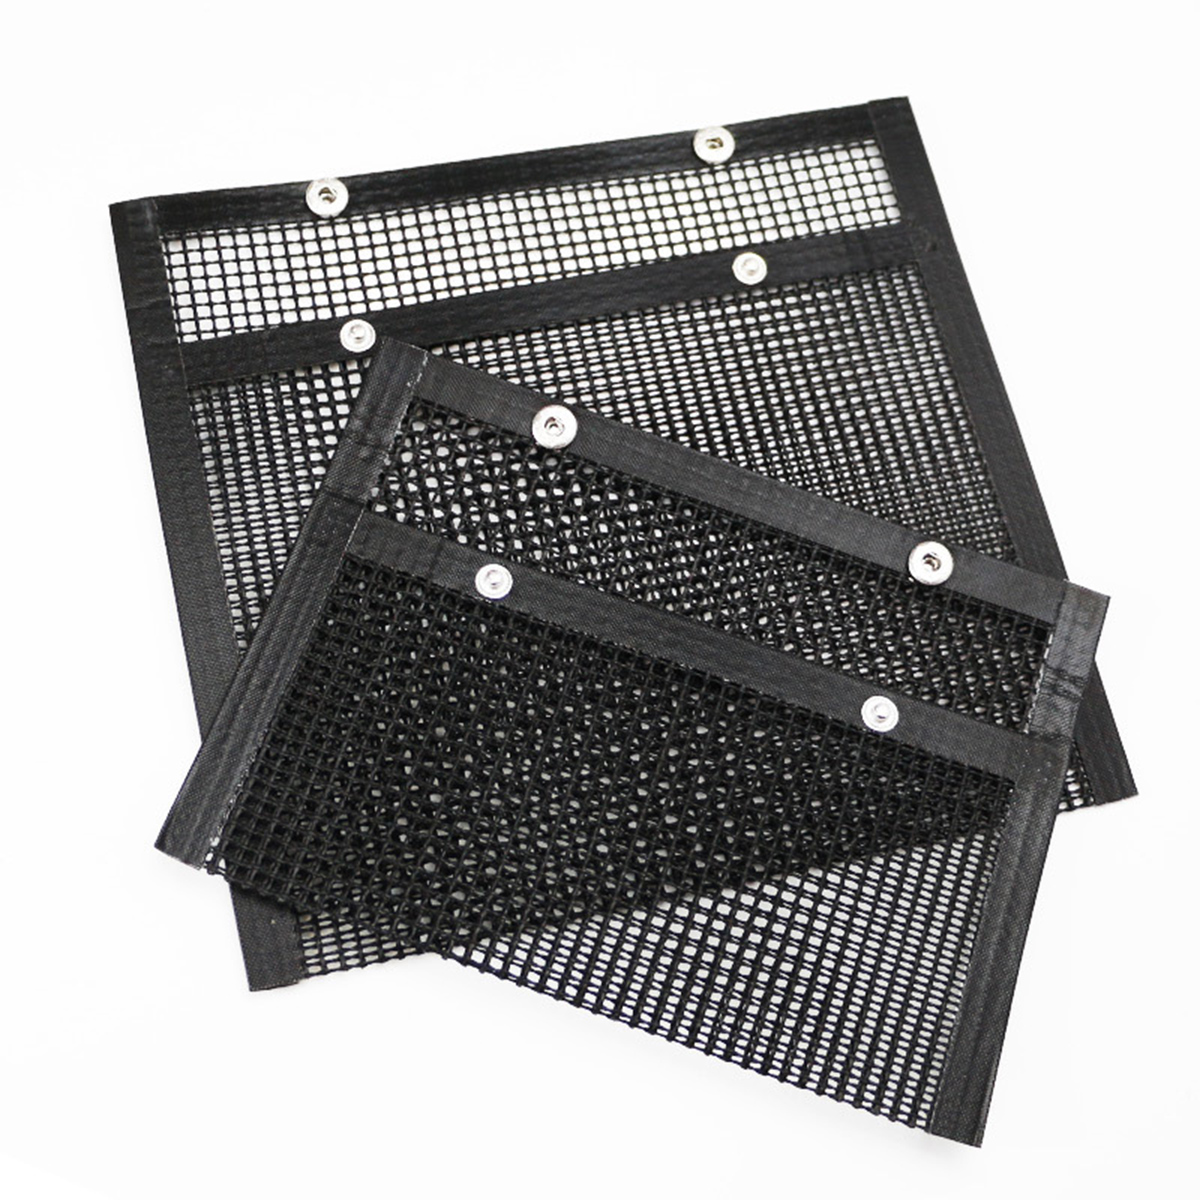 2Pcs/lot Non-stick BBQ Grill Net Glassfiber Barbecue Baking Liners Reusable Silicone Mats Mesh Tool Accessories Kitchen Pad